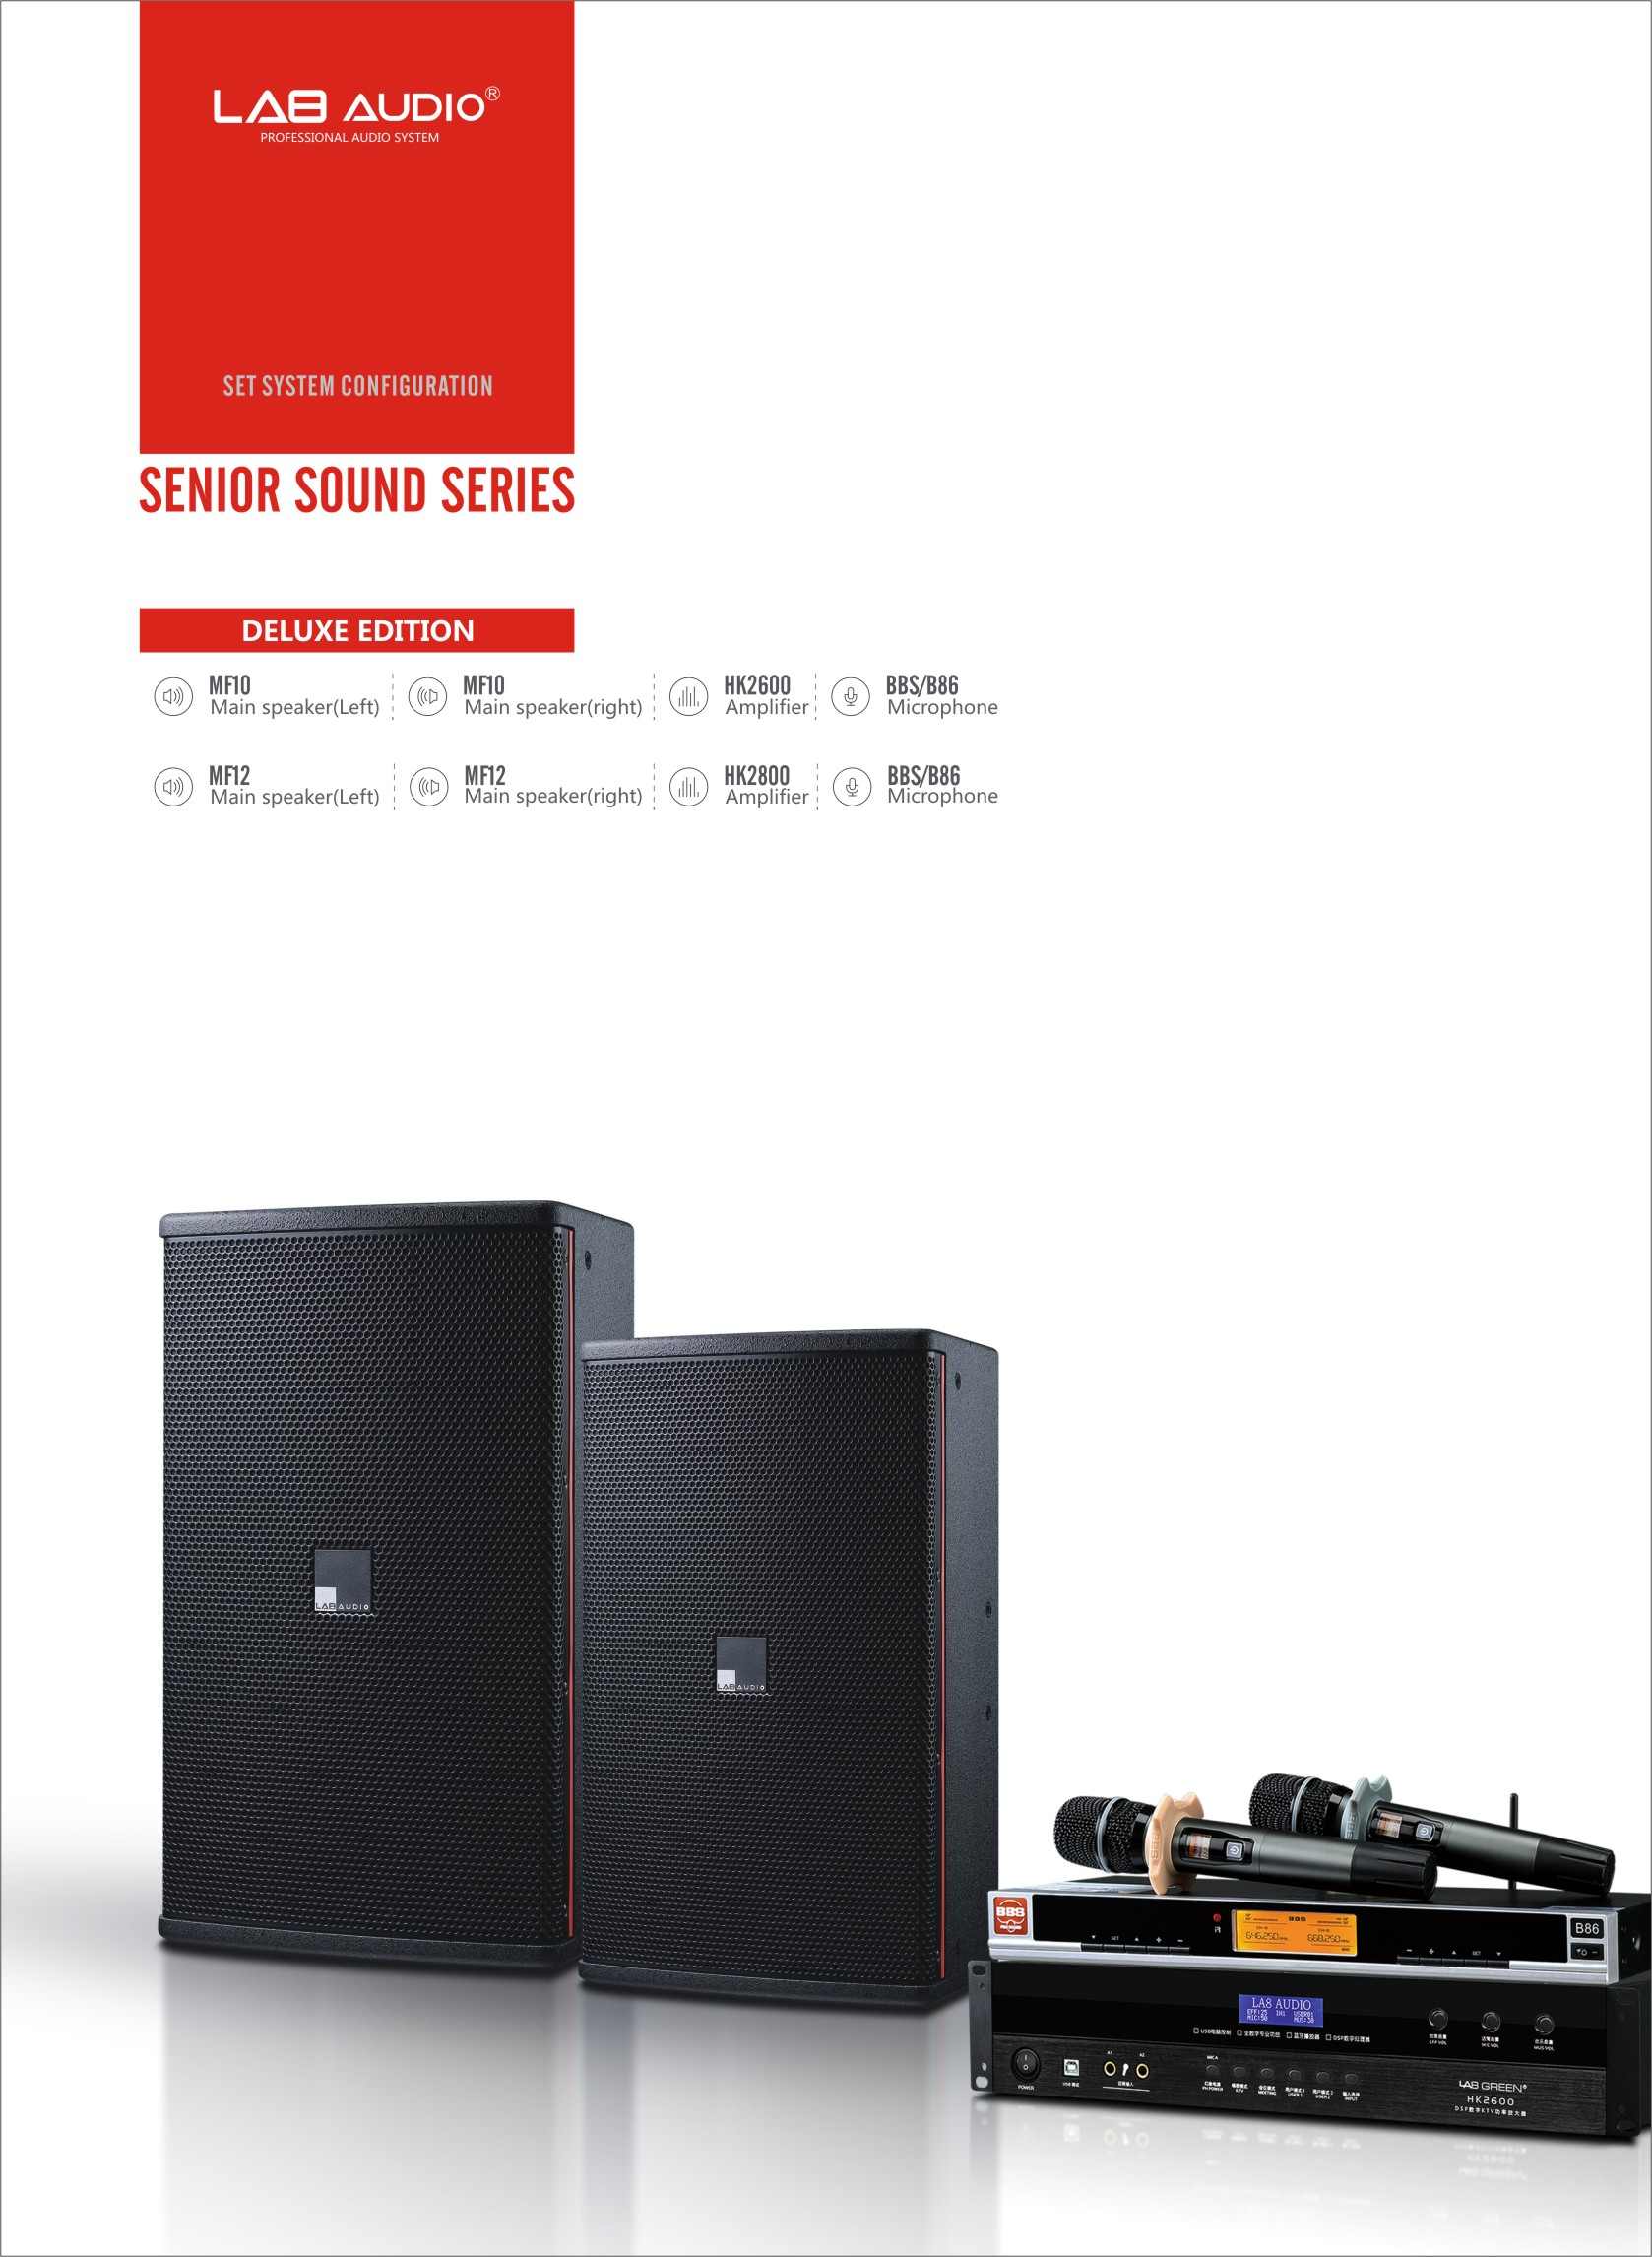 SENIOR SOUND SERIES